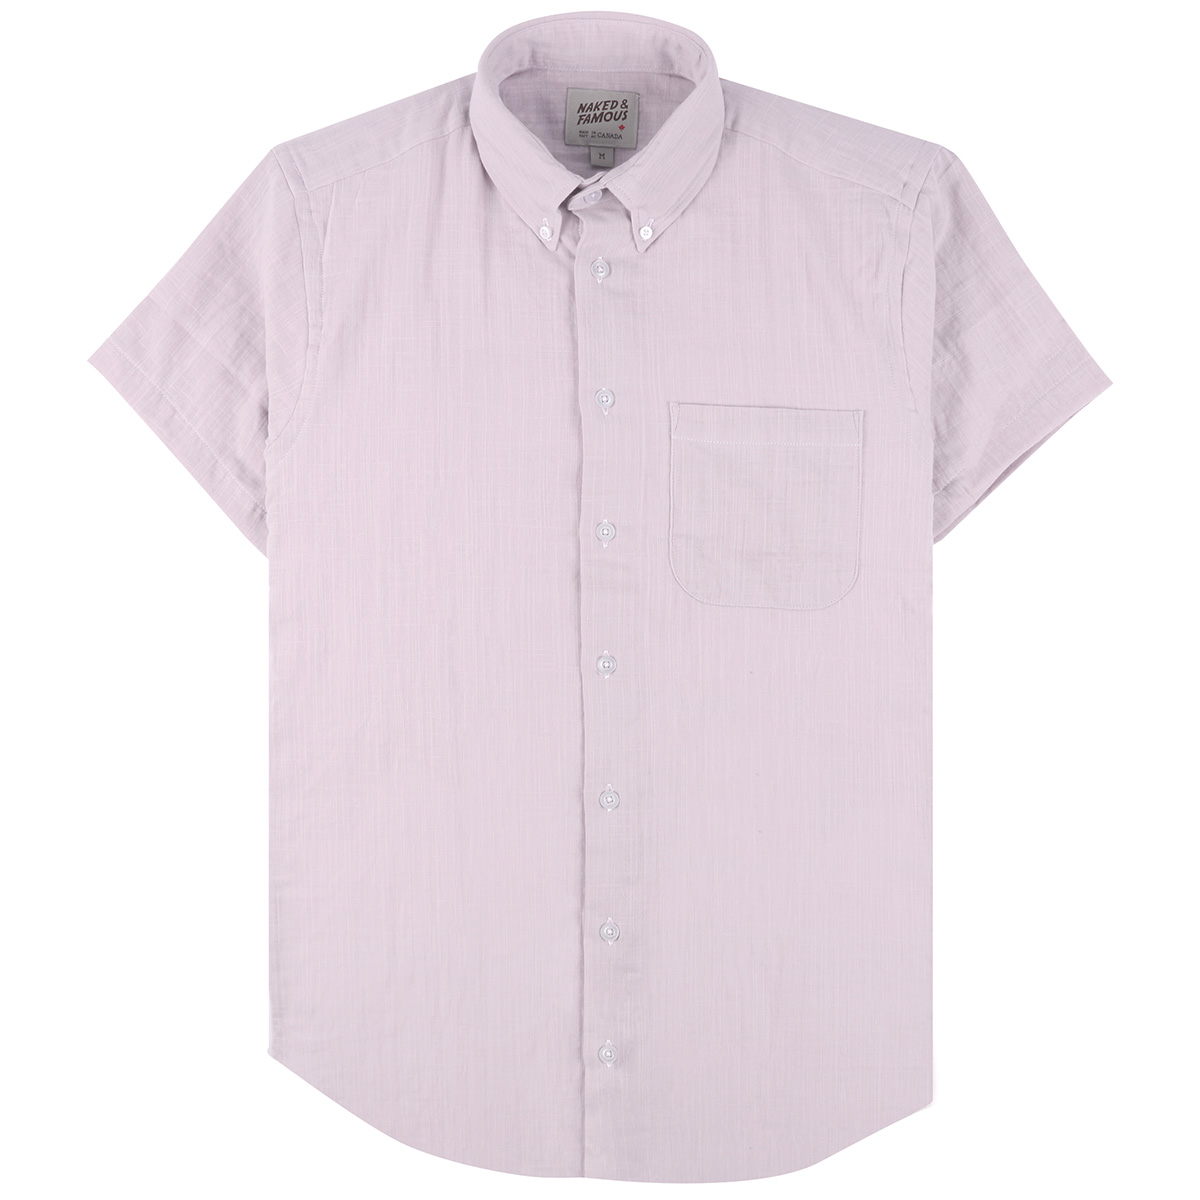 DOUBLE WEAVE GAUZE SLUB - LAVENDER - Short Sleeve Easy Shirt